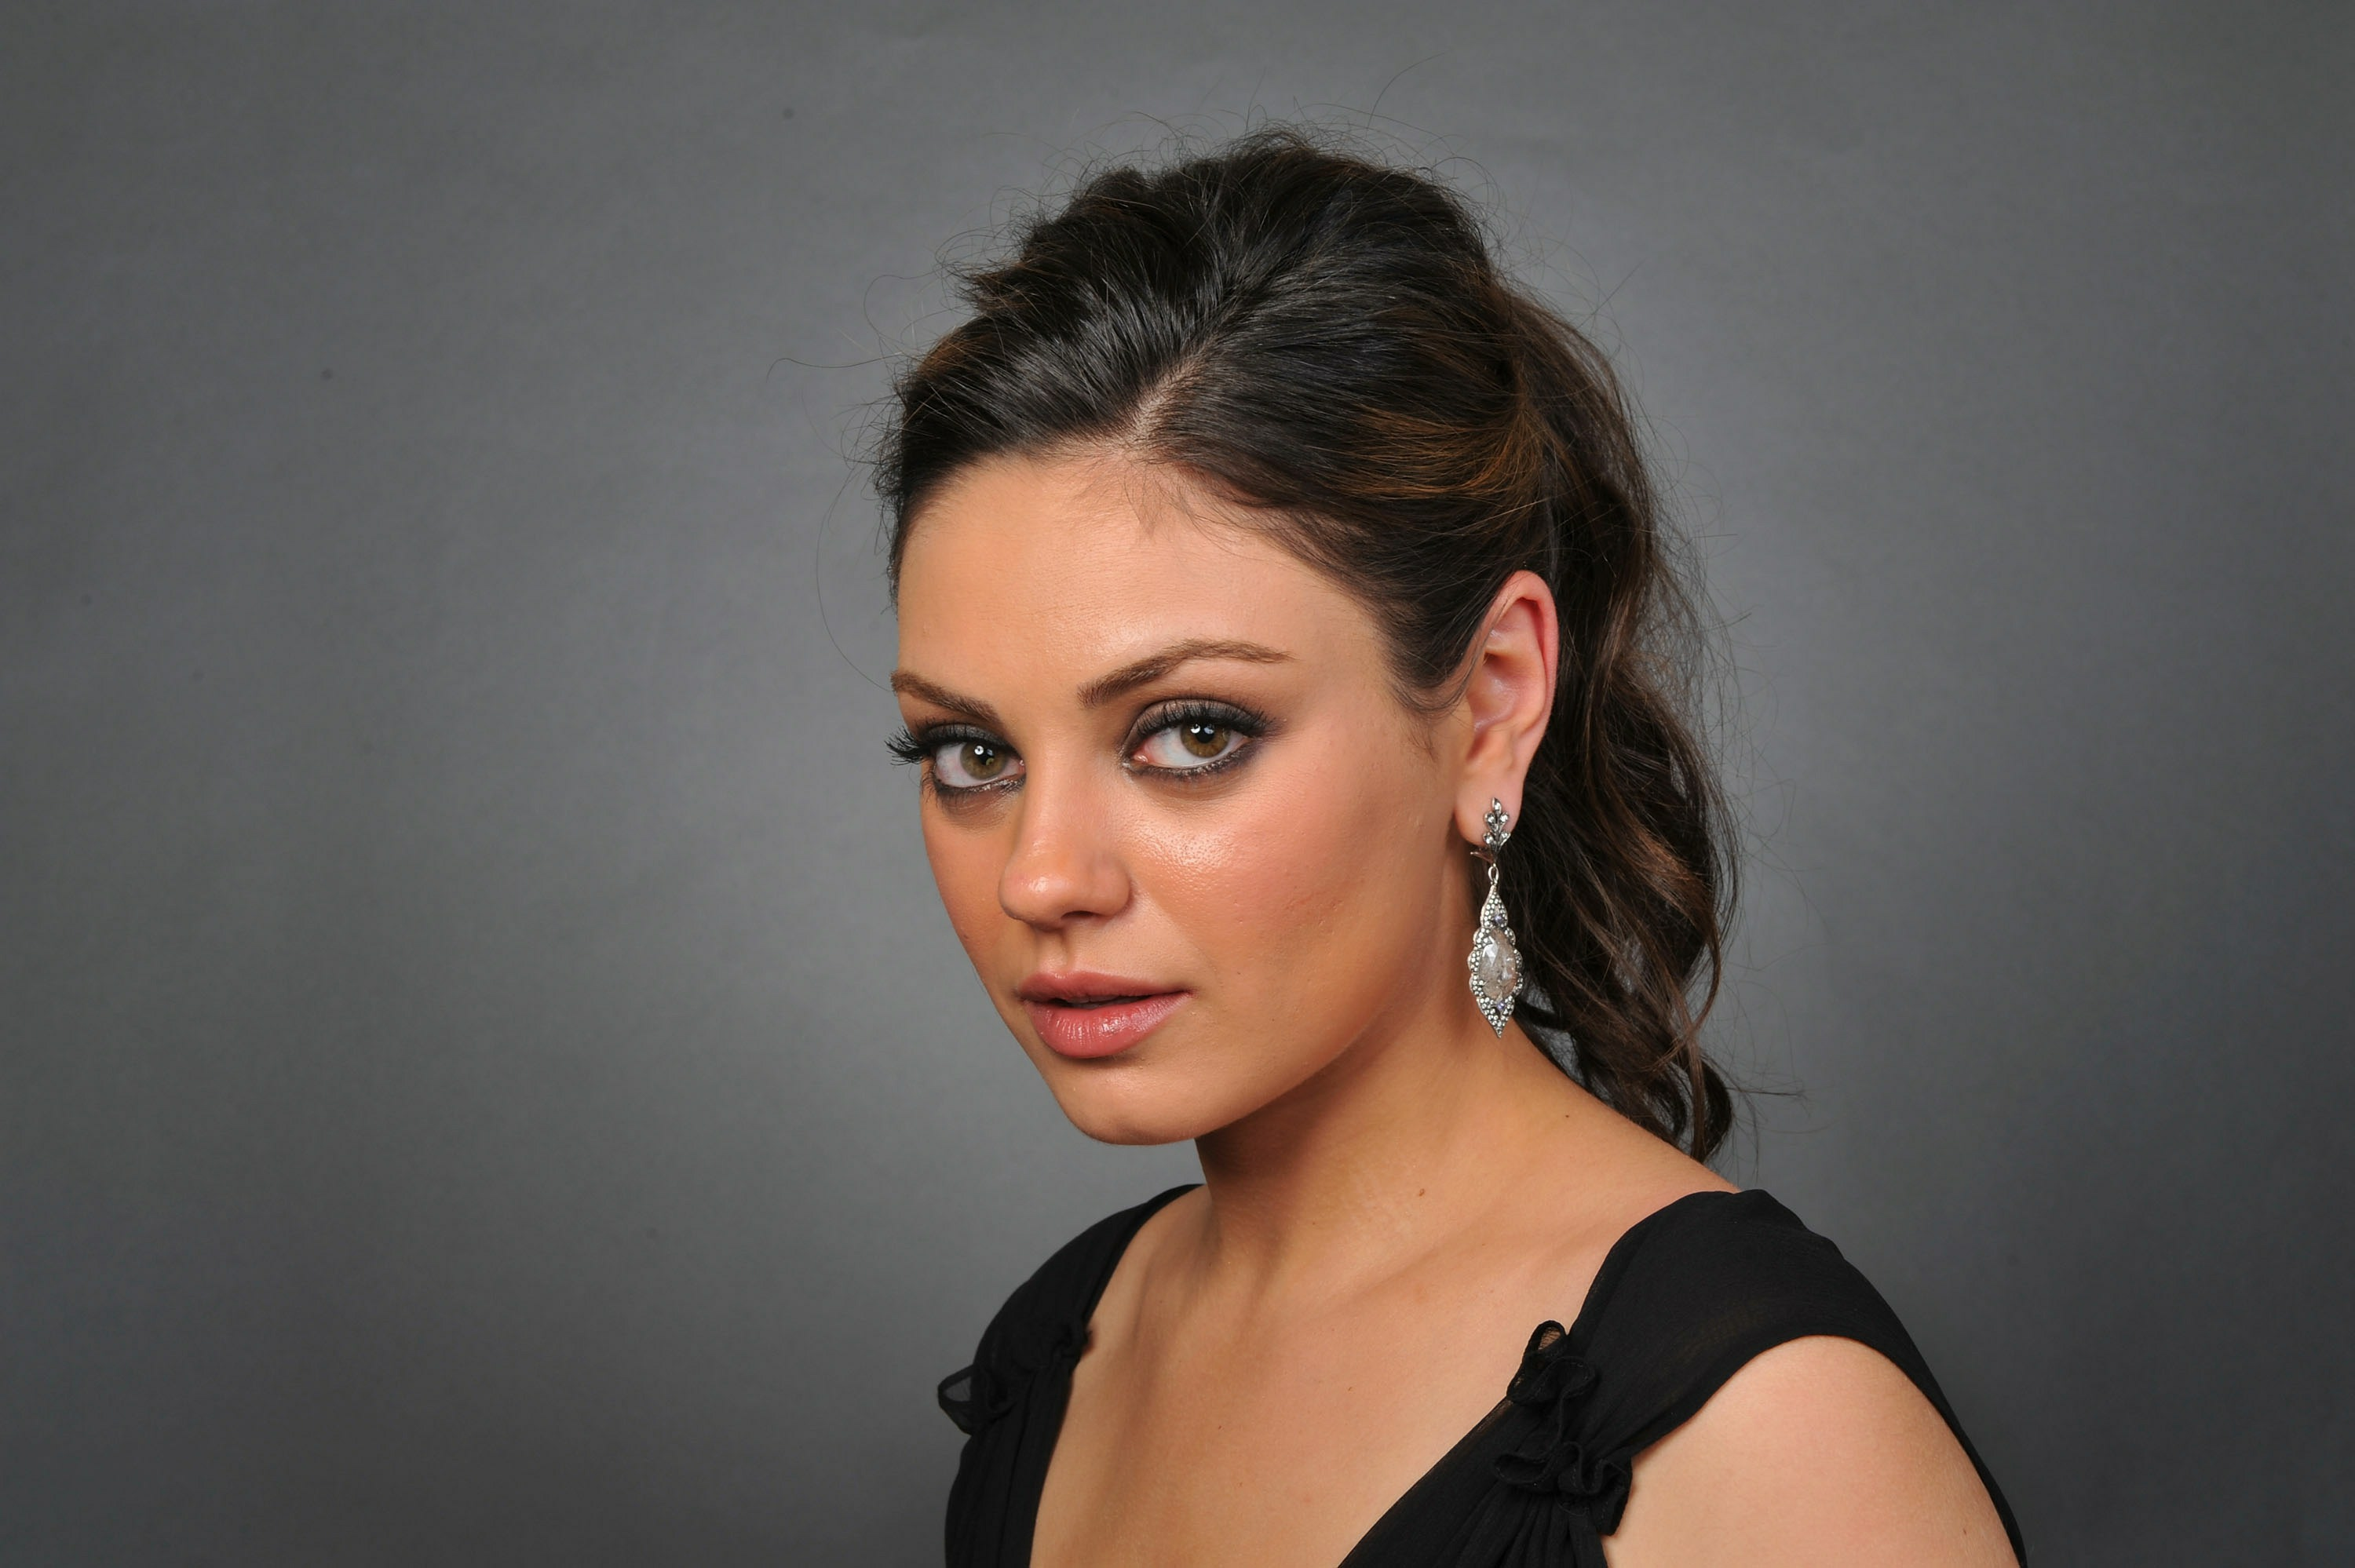 Mila-Kunis-Pictures-HD